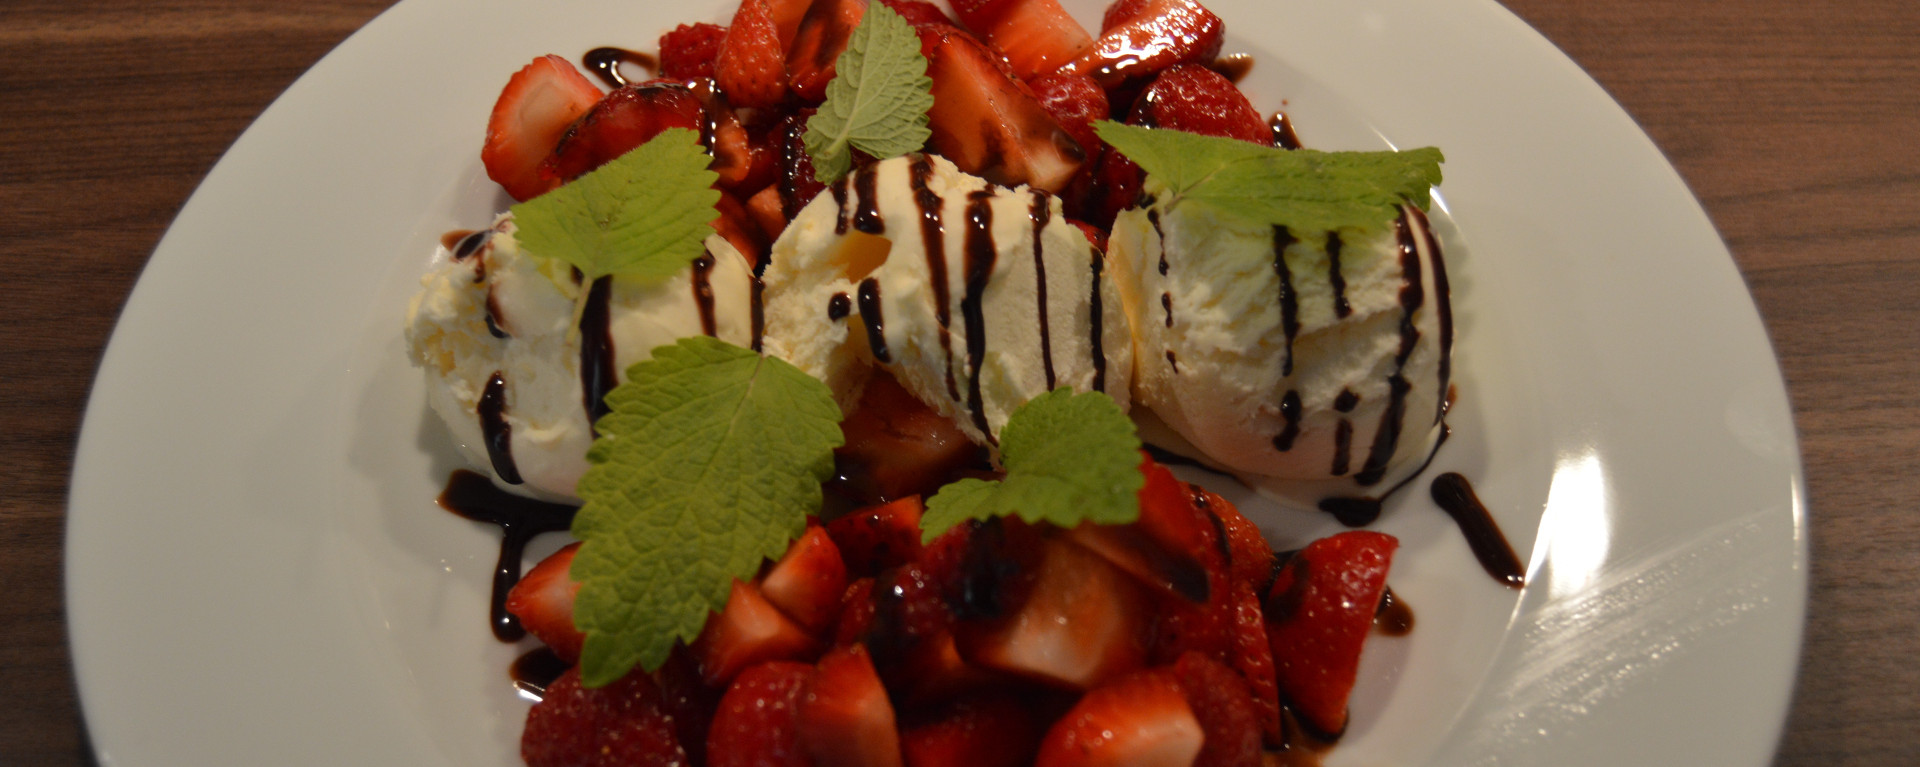 Norwegian Strawberries with ice cream